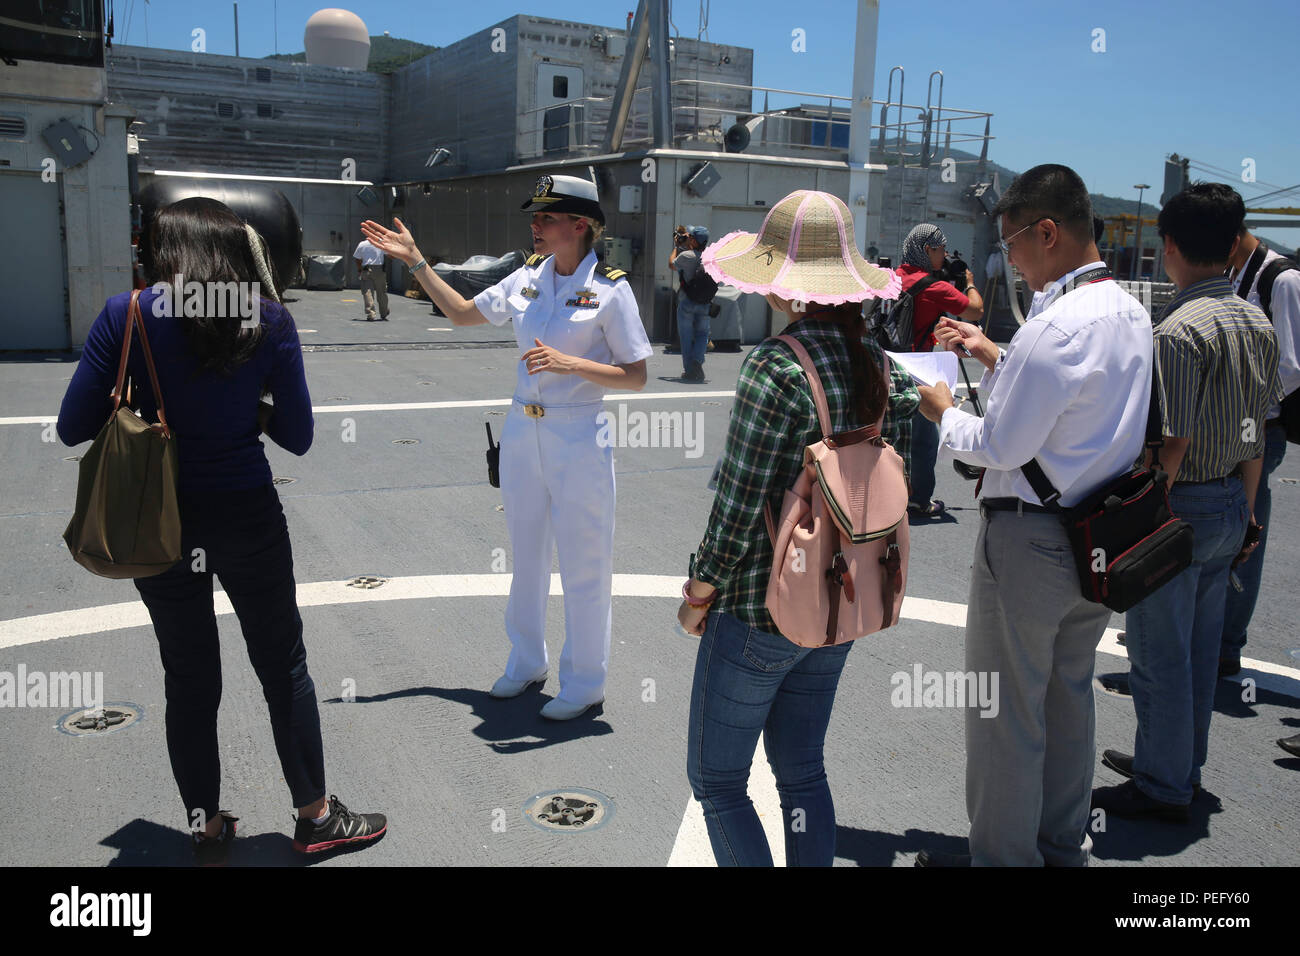 150817-M-GO800-324 DA NANG, Vietnam (Aug. 17, 2015) – Lt. Chelsea Irish explains to local Vietnamese news media the function of the flight deck aboard the Military Sealift Command joint high speed vessel USNS Millinocket (JHSV 3) during a ship tour August 17. Task Force Forager, embarked aboard the Millinocket  is serving as the secondary platform for Pacific Partnership, led by an expeditionary command element from the Navy's 30th Naval Construction Regiment (30 NCR) from Port Hueneme, Calif. Now in its 10th iteration, Pacific Partnership is the largest annual multilateral humanitarian assist - Stock Image